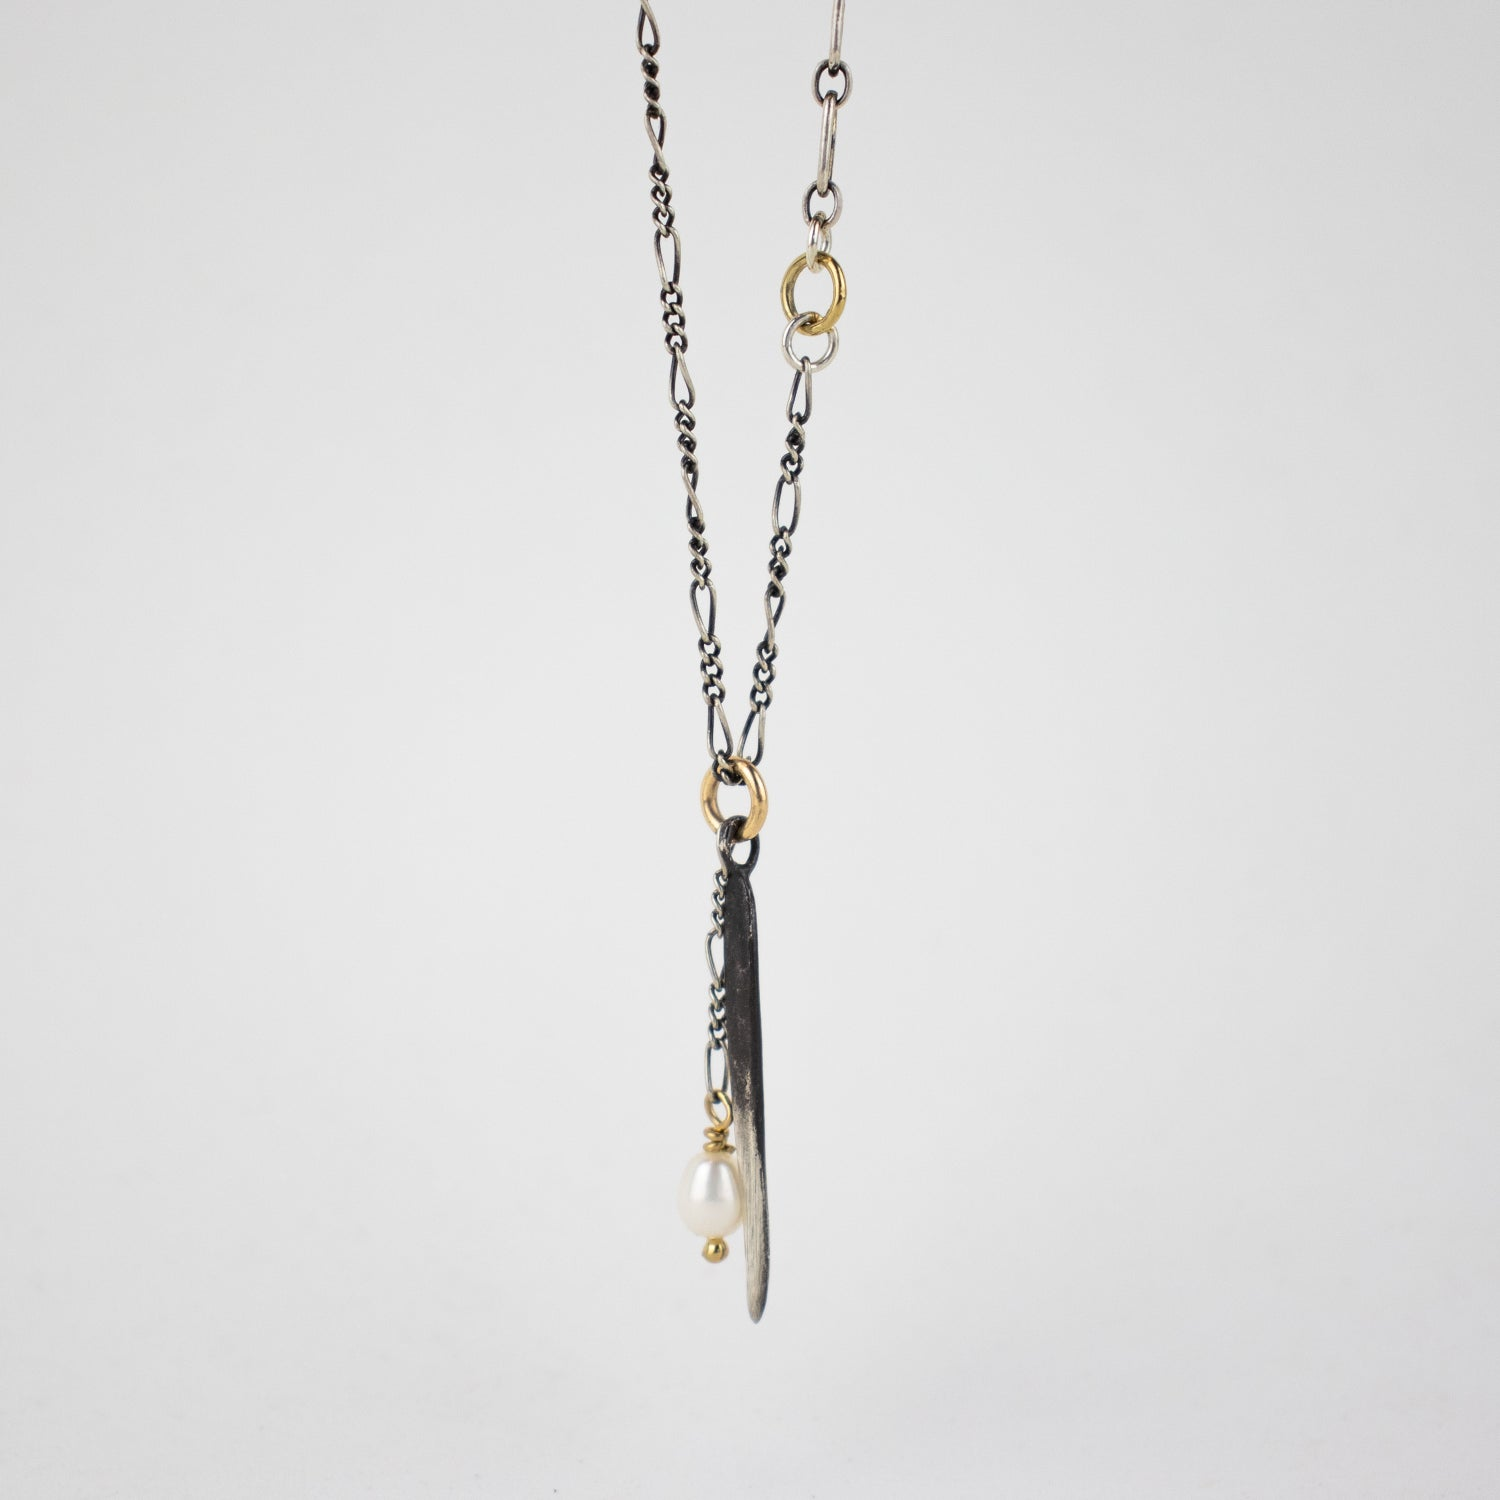 Image of Silver Spike & Pearl Mixed-Chain Necklace